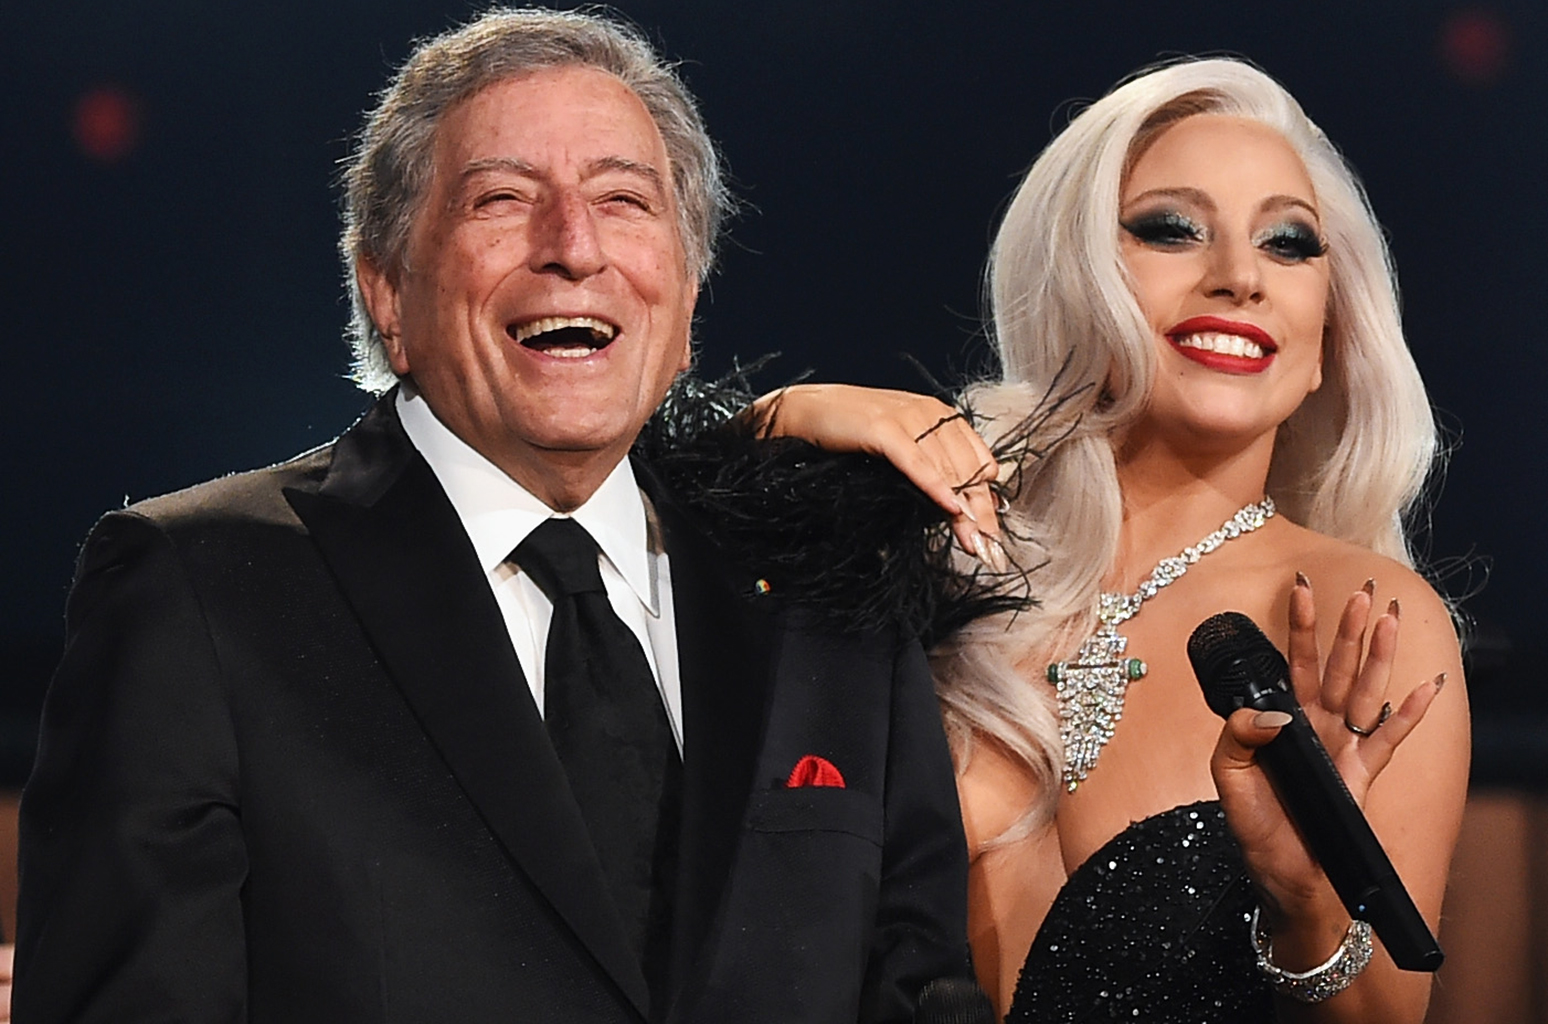 Tony-Bennett-and-Lady-Gaga-perform-during-2015-grammys-billboard-1548.jpg